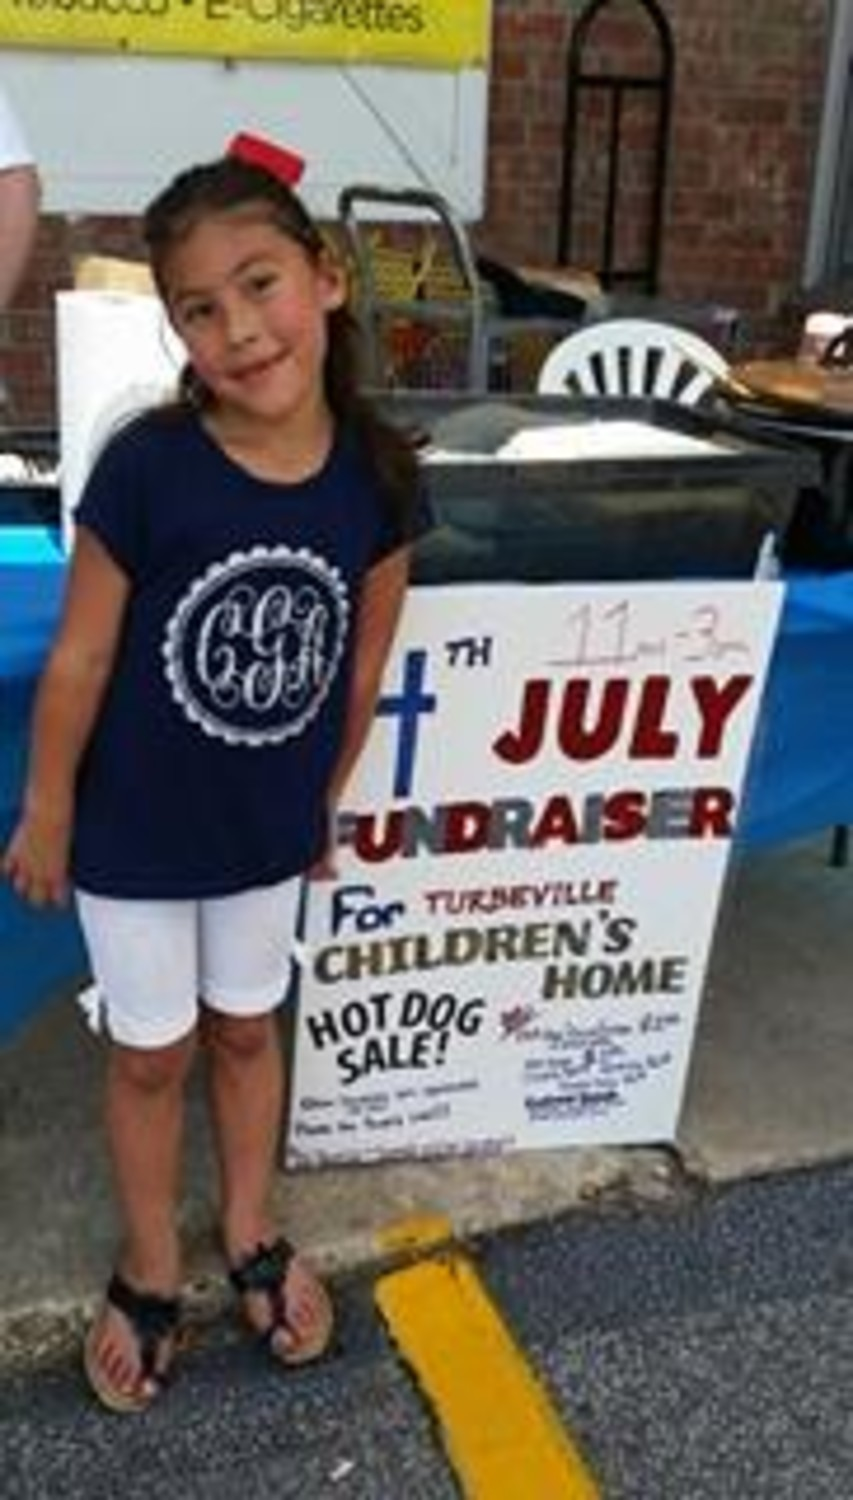 Camilla Garcia, daughter of one of the Turbeville Children's Home employees, was on hand July 4 for the home's hot dog and bake sale at the Turbeville Dollar General.